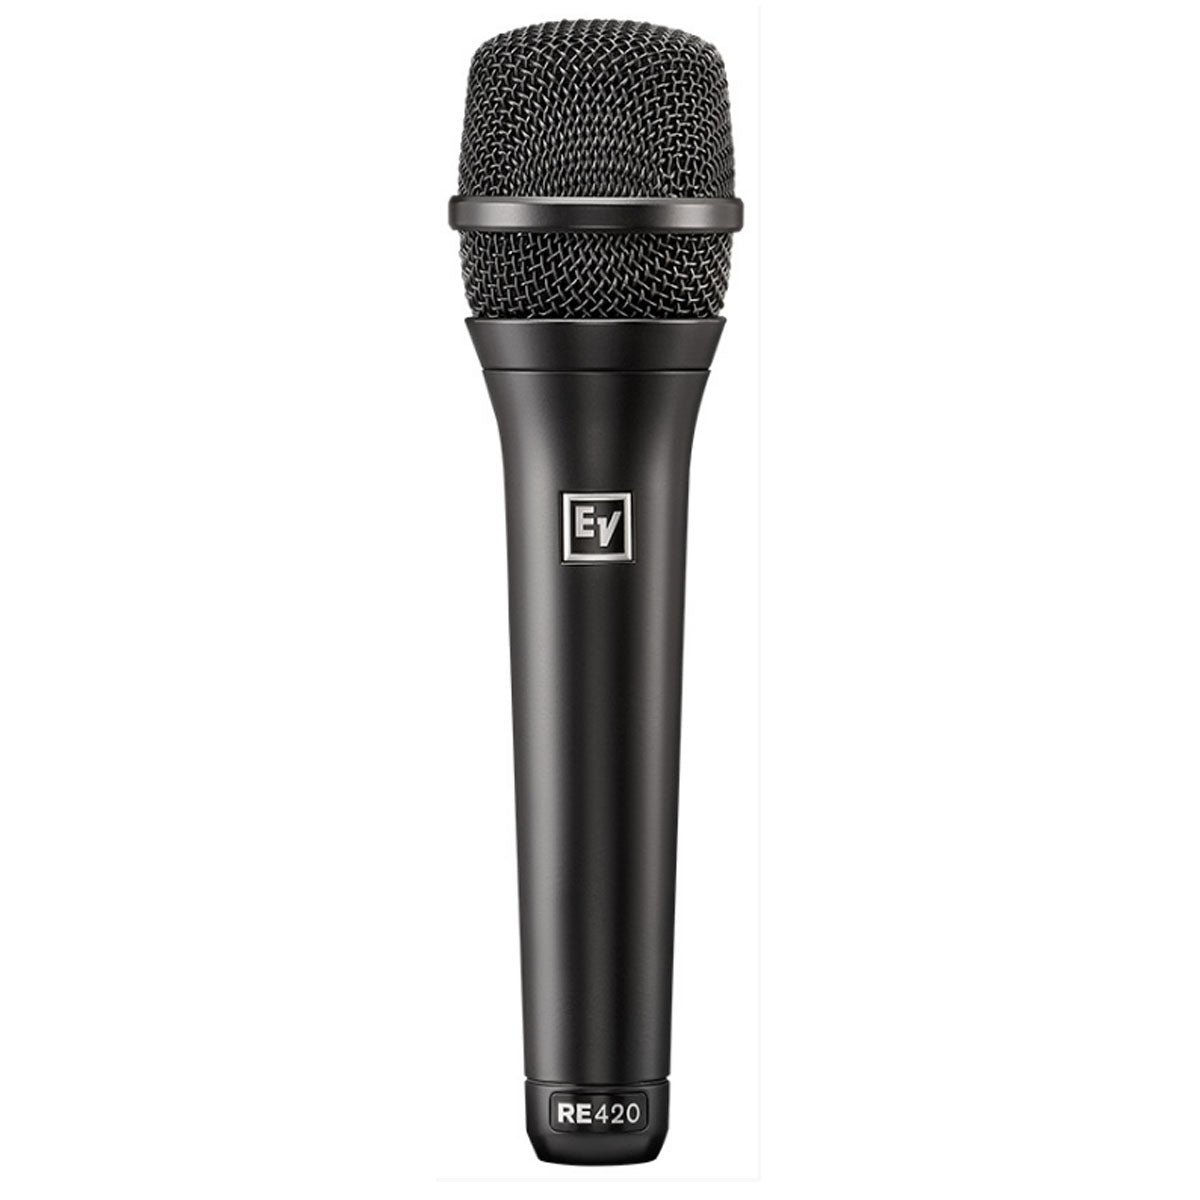 Electro-Voice RE420 Microphone Condenser Cardioid Vocal Mic